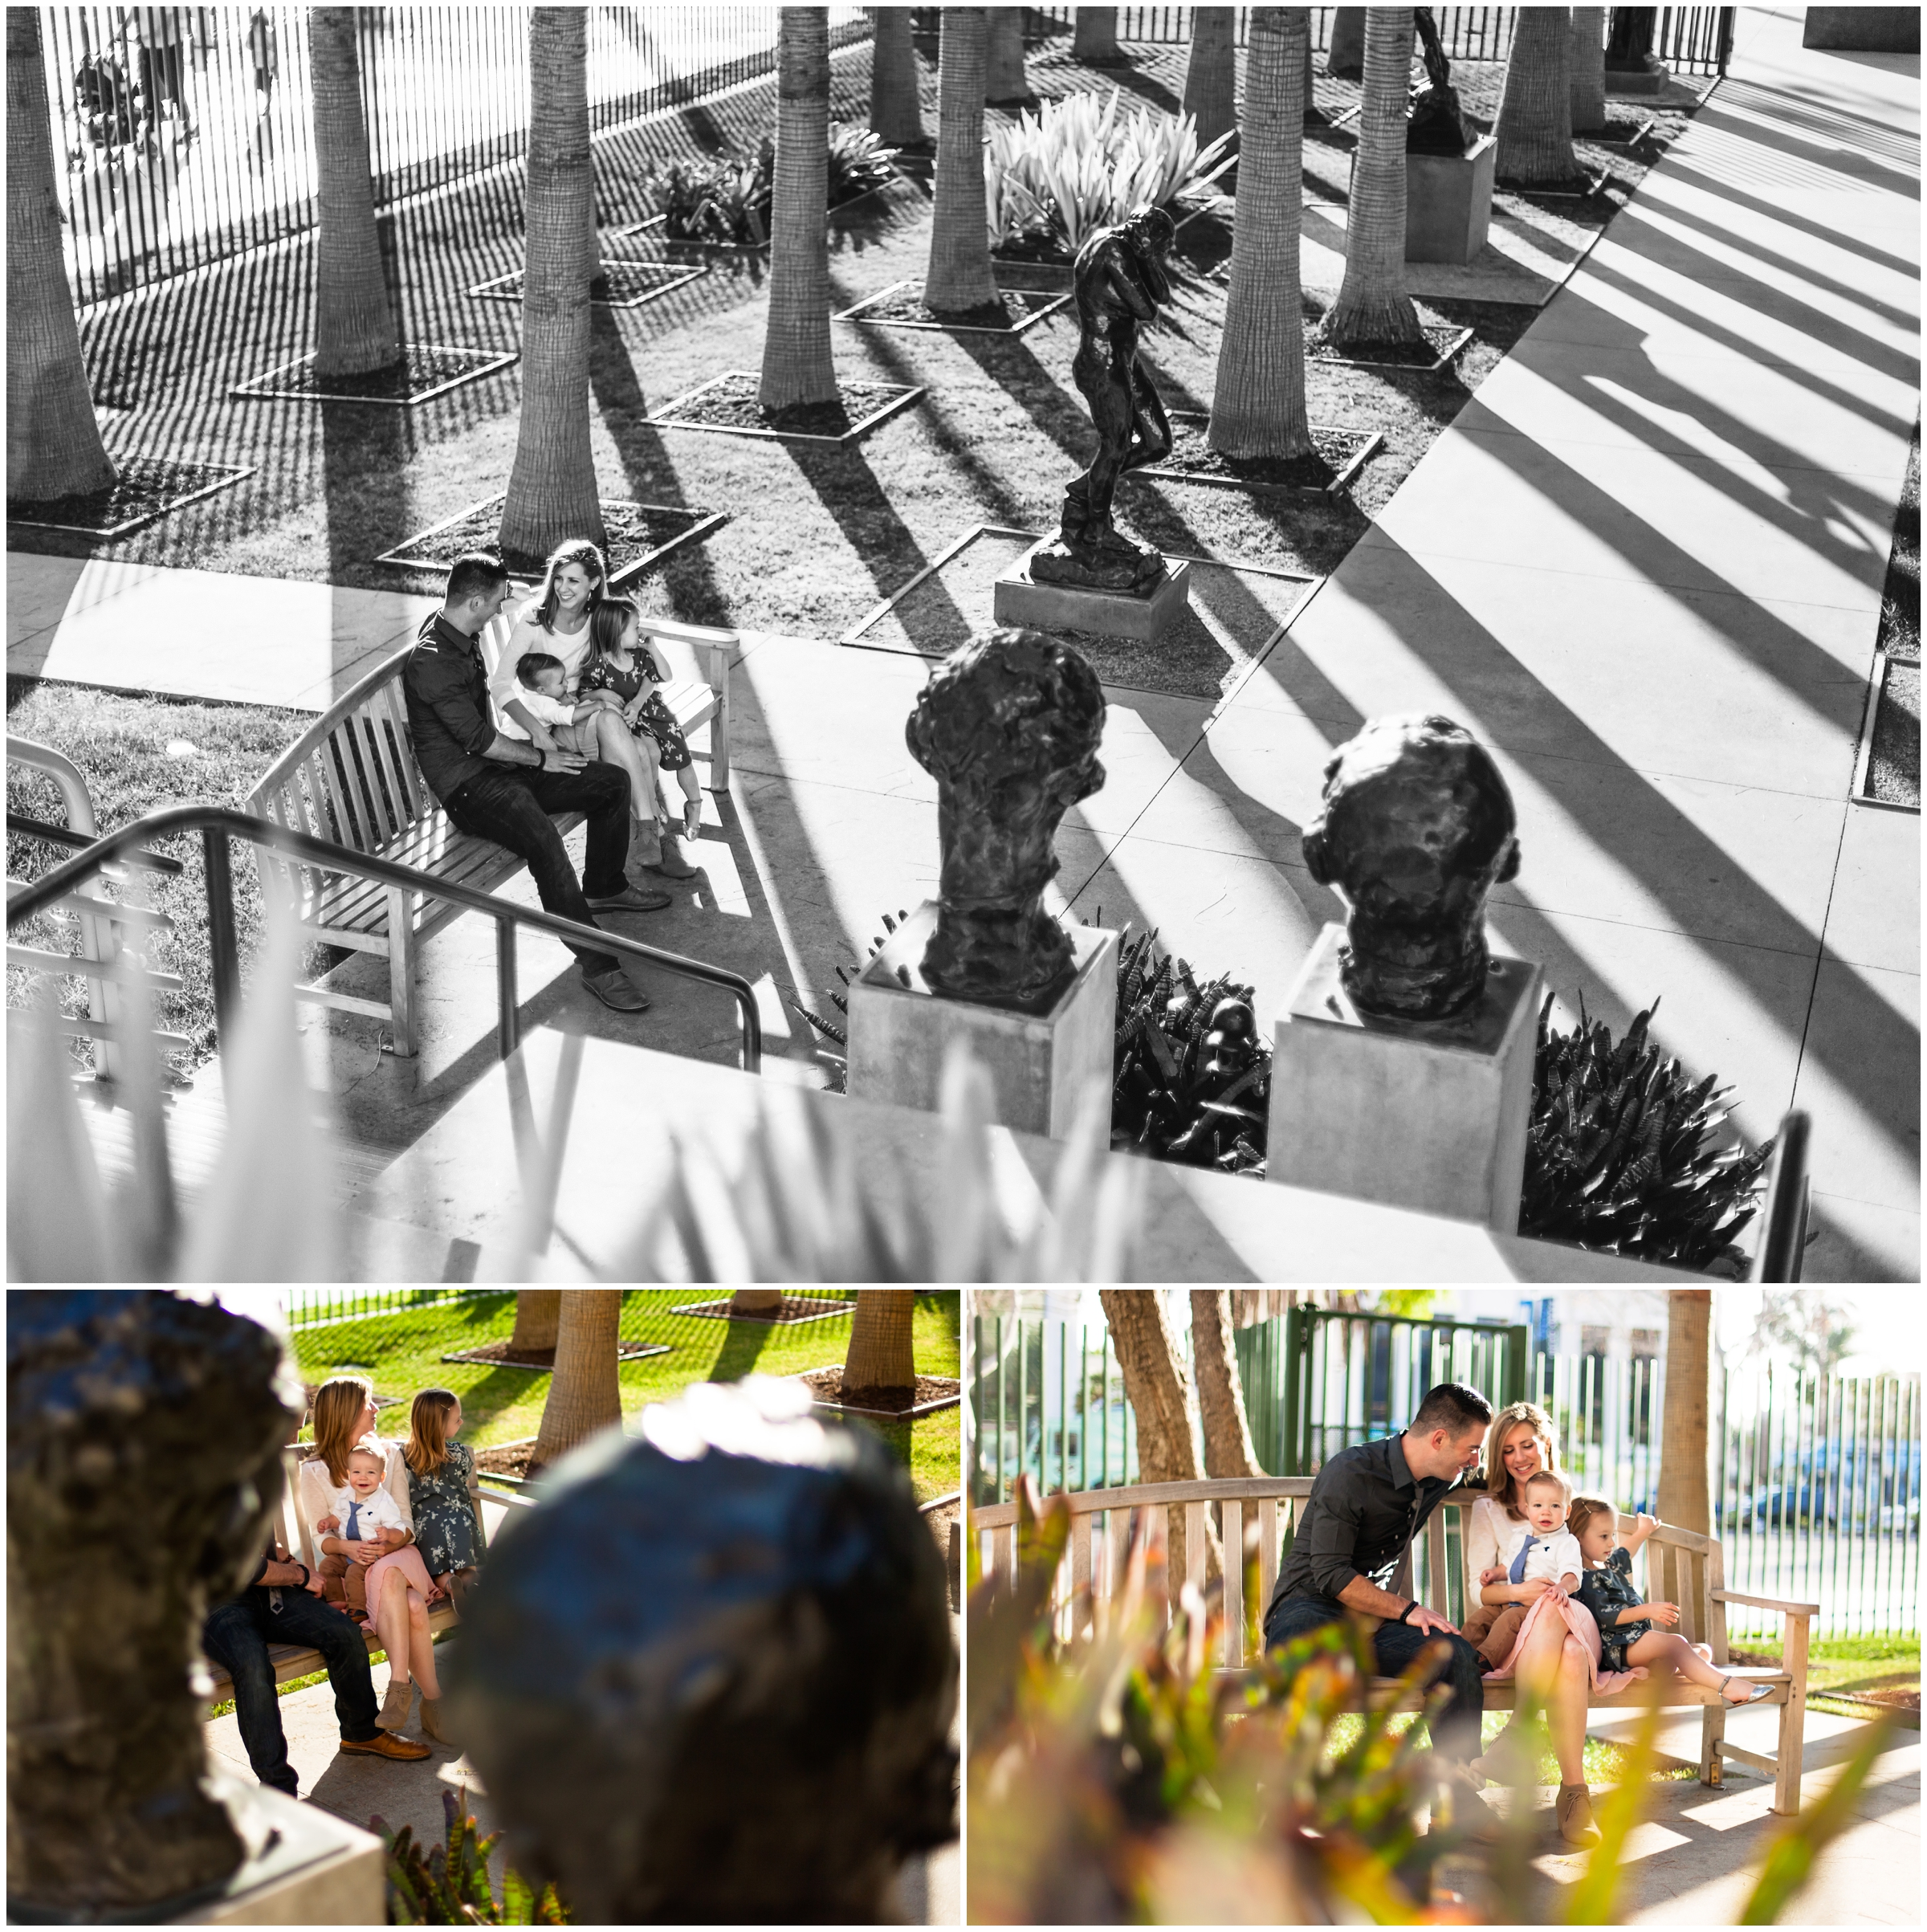 Family Portraits at LACMA Sculpture Garden by Just Maggie Photography - Los Angeles Family Photographer